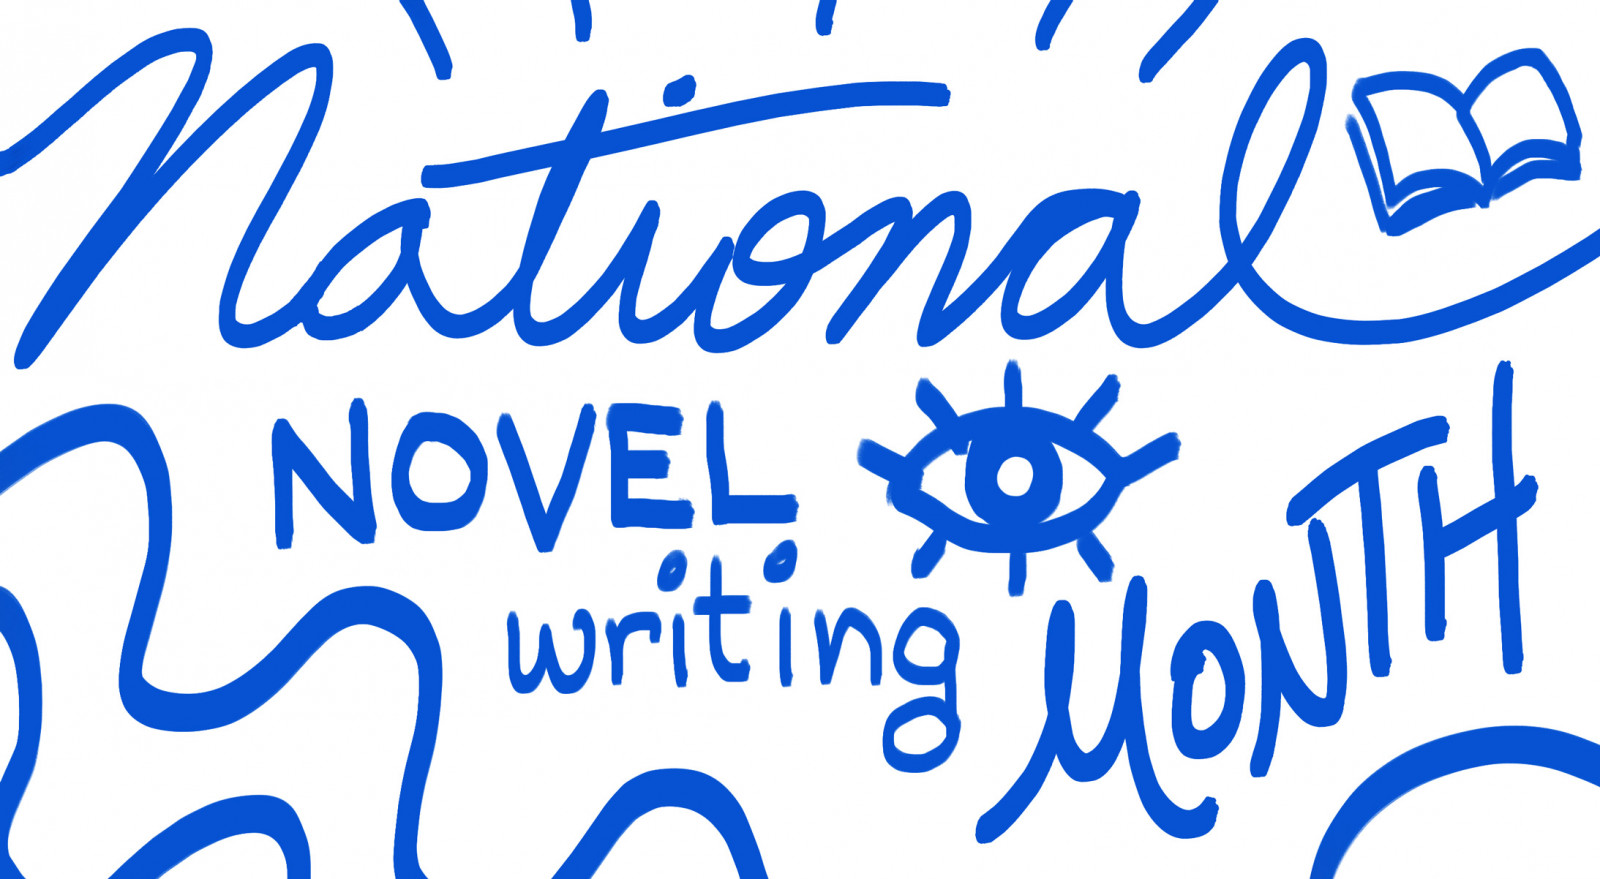 National Novel Writing Month at Nibs.com